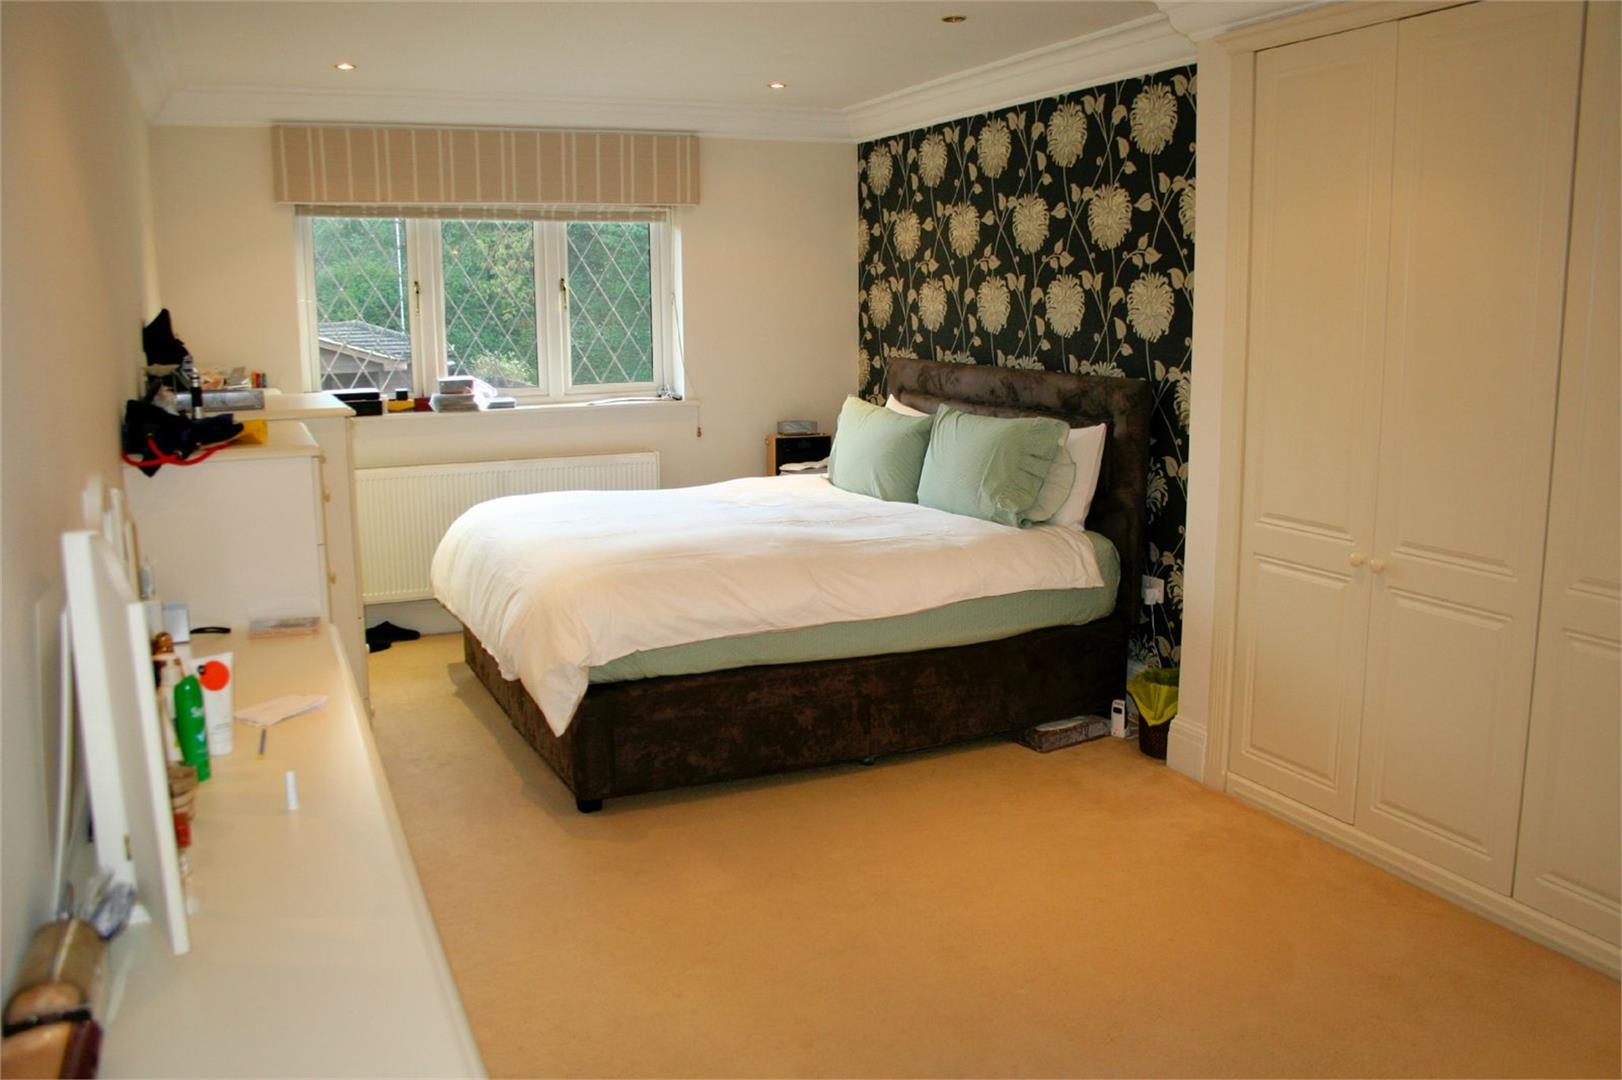 5 bed to rent - (Property Image 7)